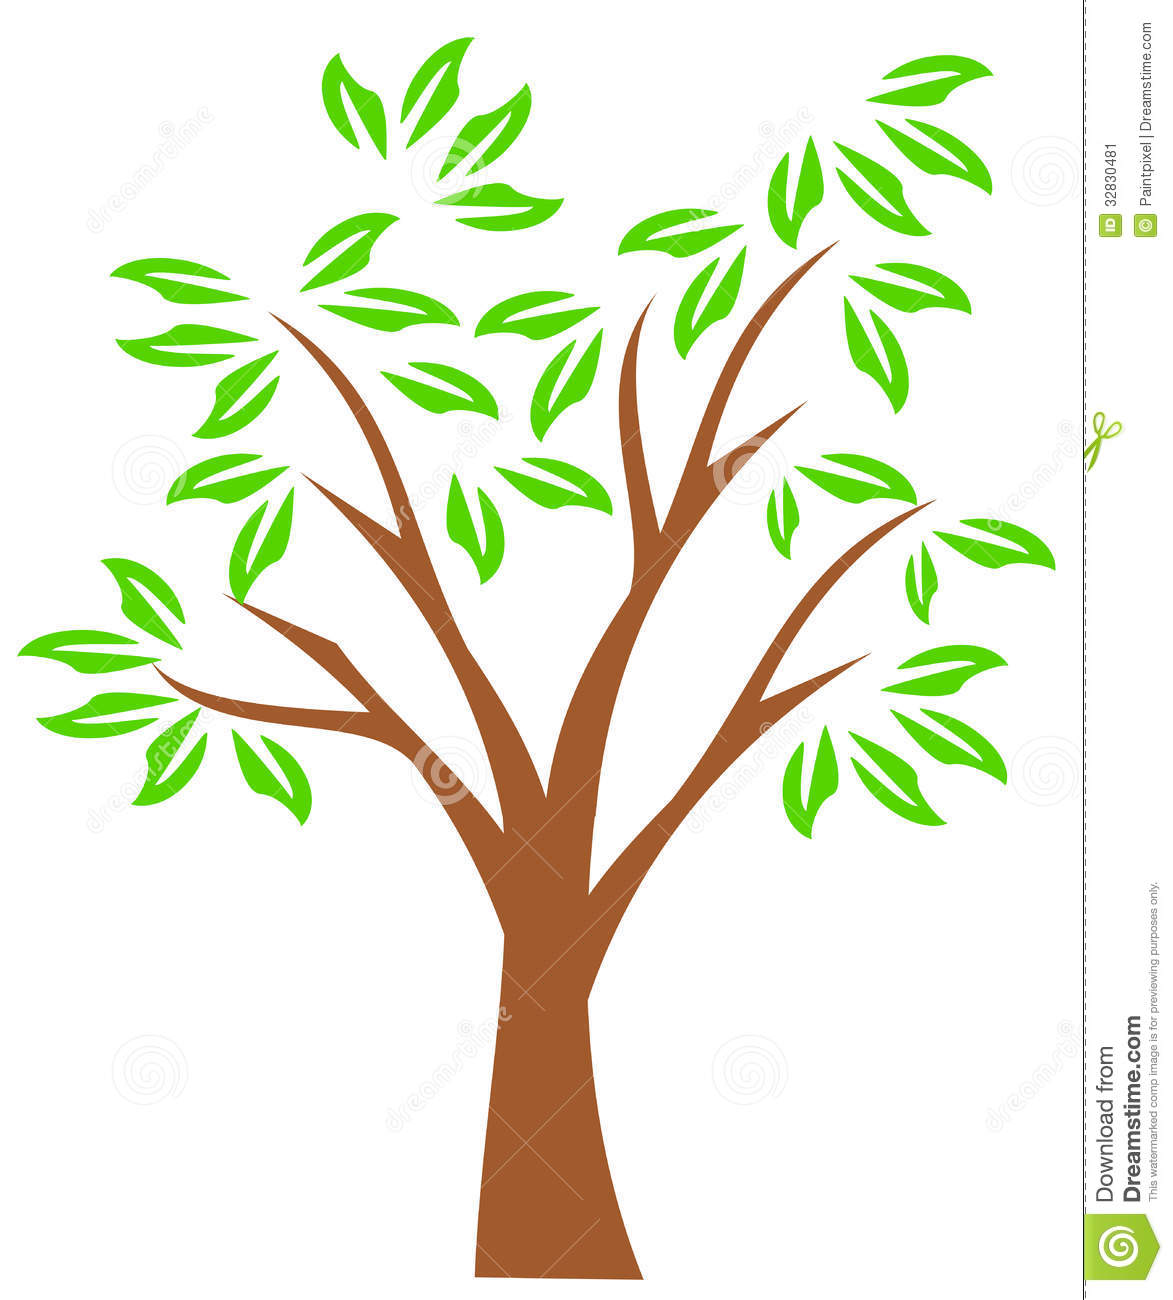 Clipart Family Tree   Clipart Panda   Free Clipart Images